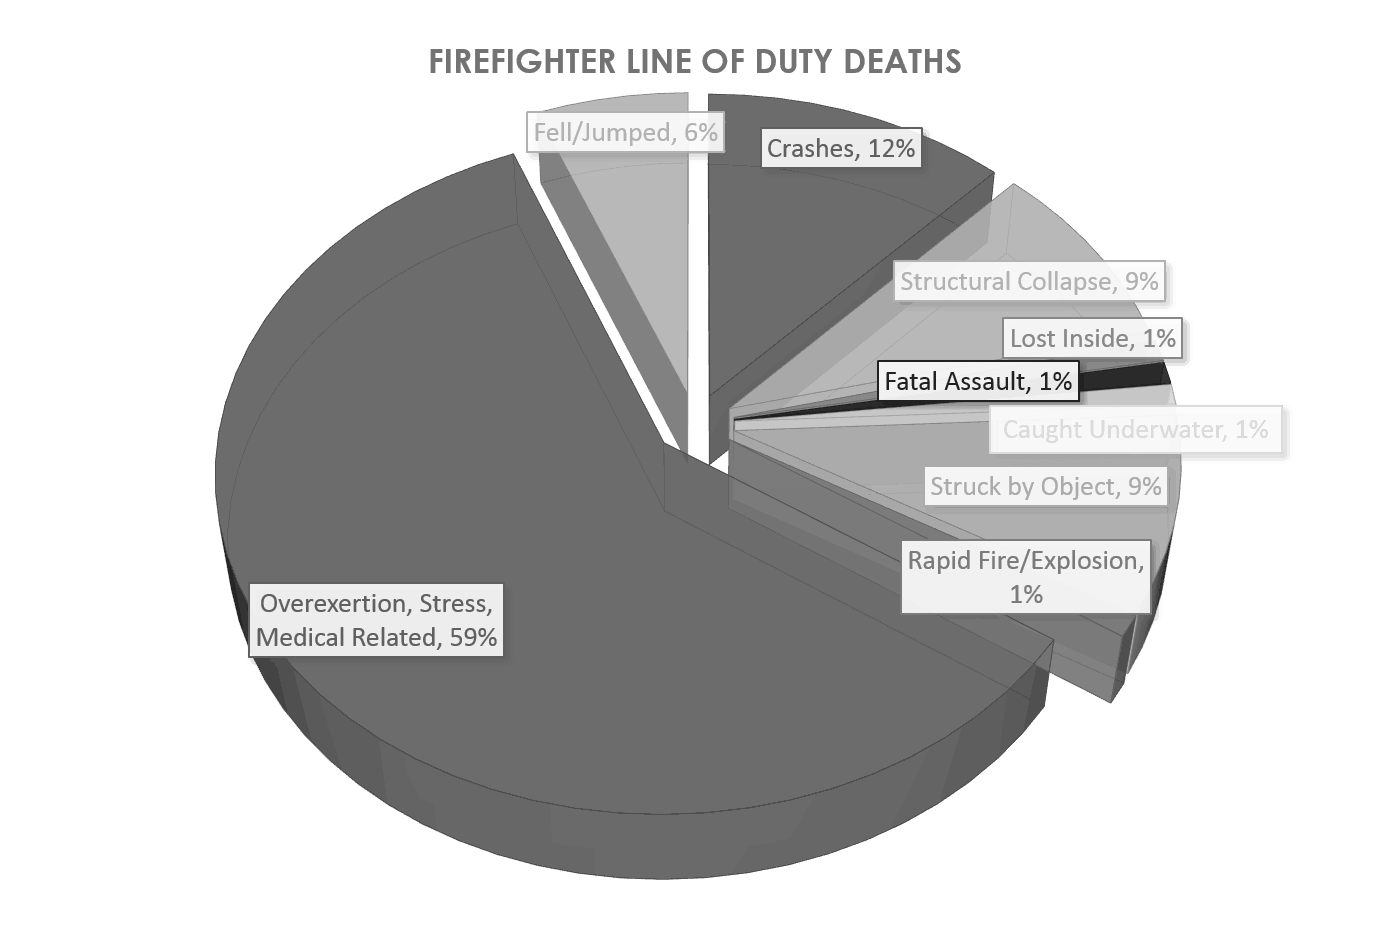 "Fahy, Rita F.  ""U.S. Firefighter Injuries - 2014"" NFPA. NFPA, June 2016. Web. 1 8 2016   http://www.nfpa.org/~/media/files/research/nfpa-reports/fire-service-statistics/osfff.pdf?la=en"